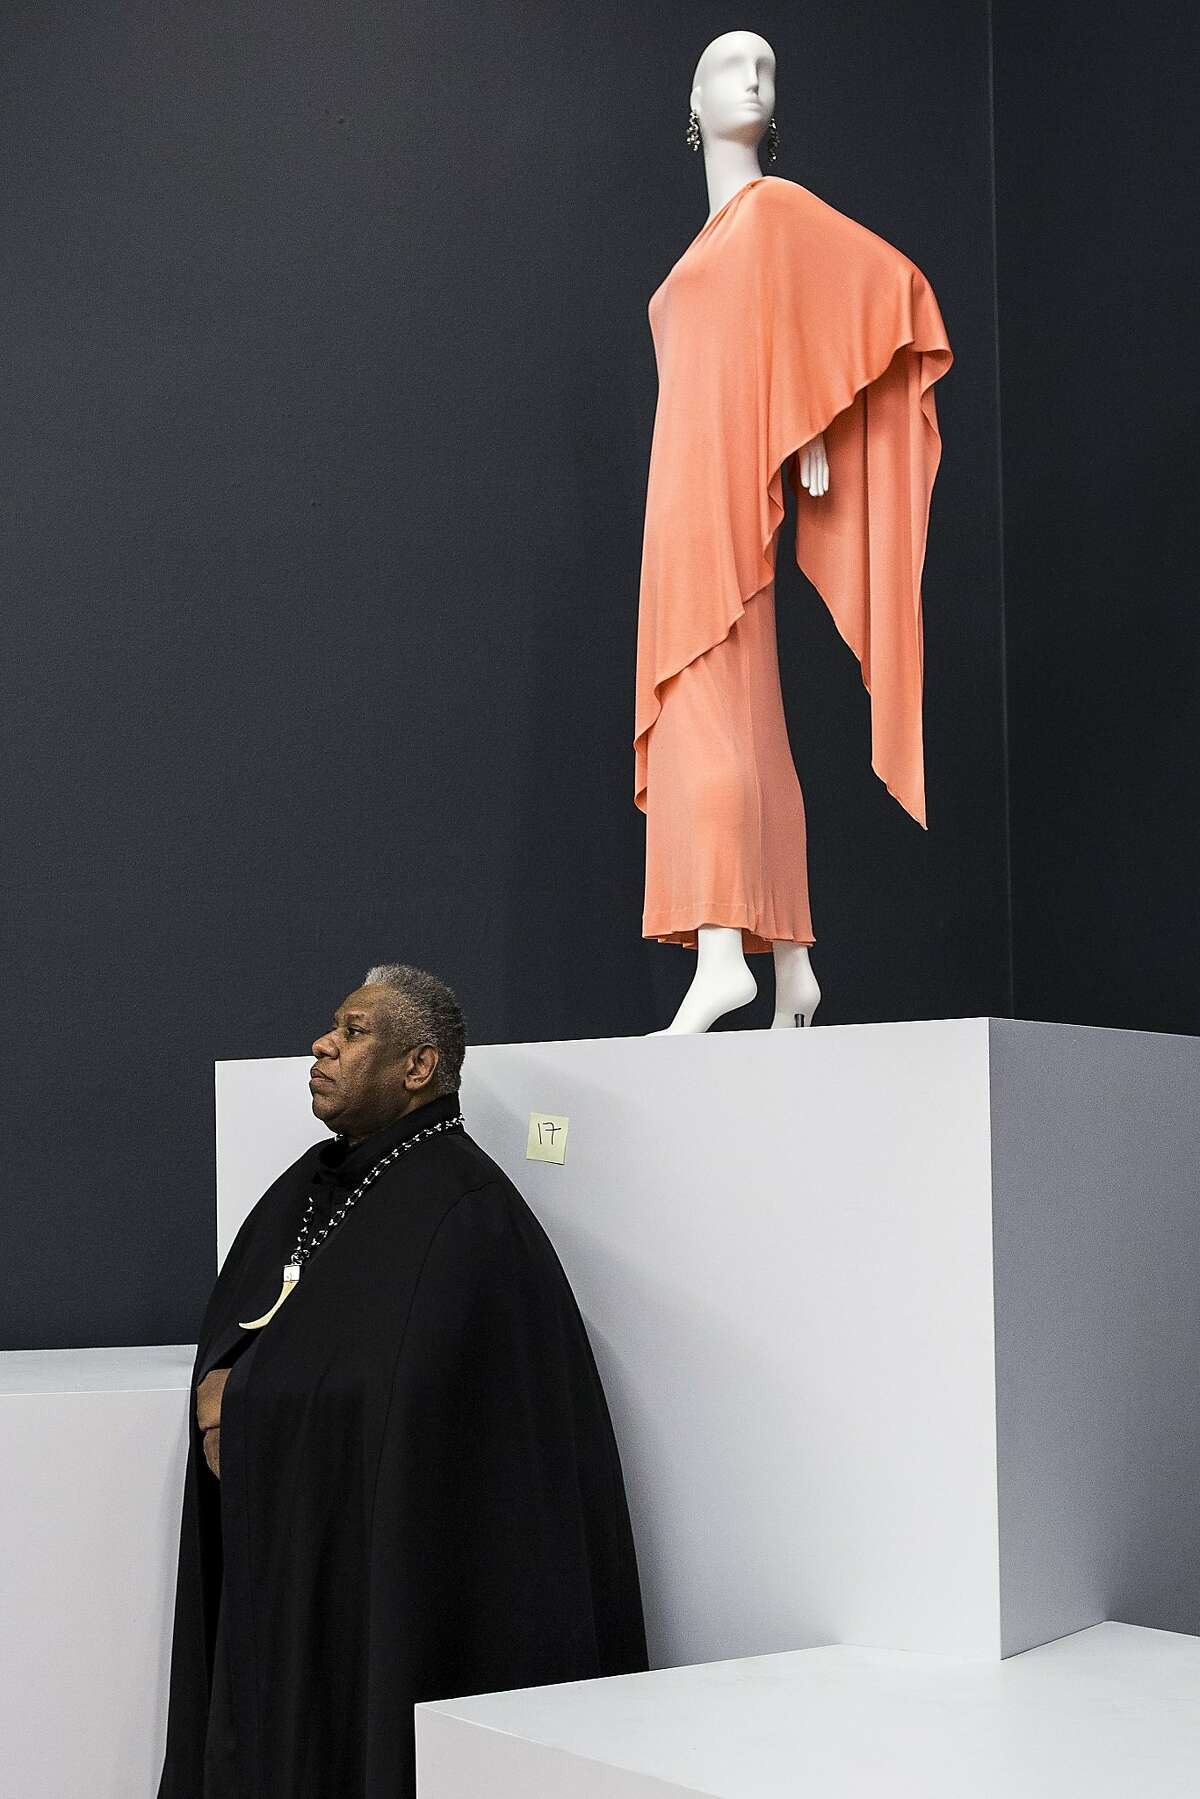 André Leon Talley, former editor-at-large of Vogue Magazine, stands for a portrait at an unfinished exhibit of the upcoming Oscar de la Renta retrospective at the De Young Museum in San Francisco, Calif. on Monday, Feb. 22, 2016.